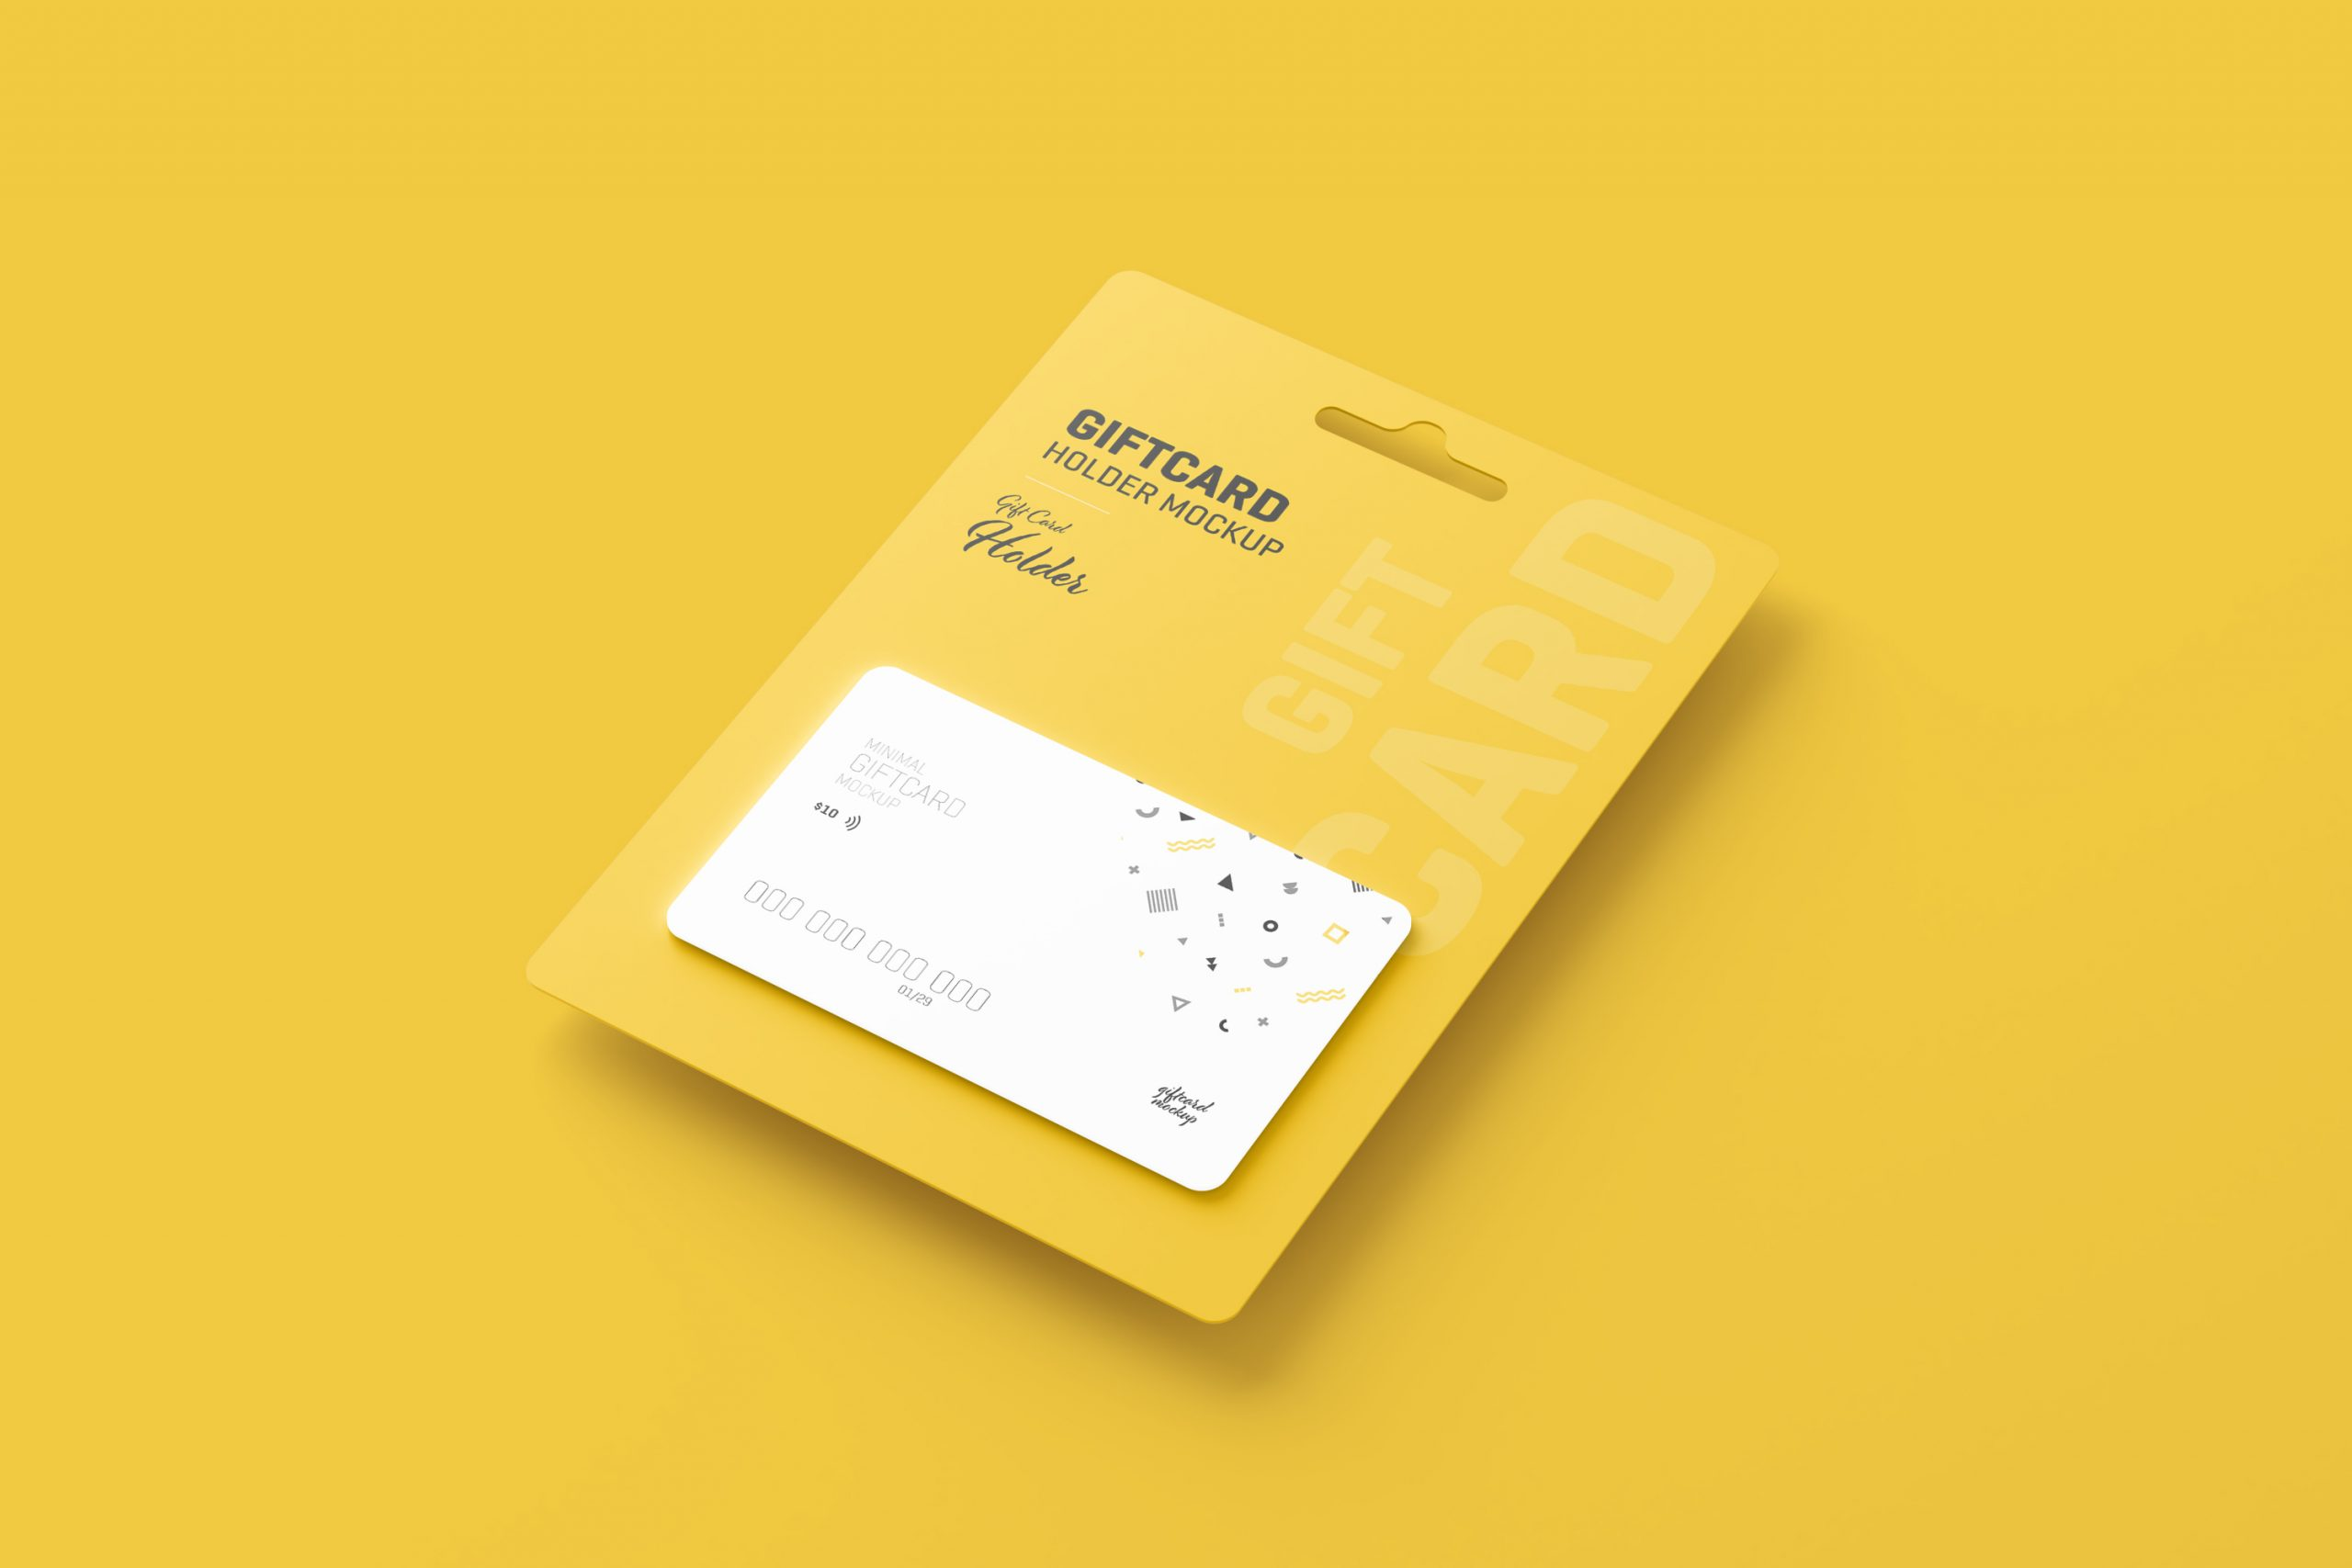 Gift Card Mockup With Card Holder